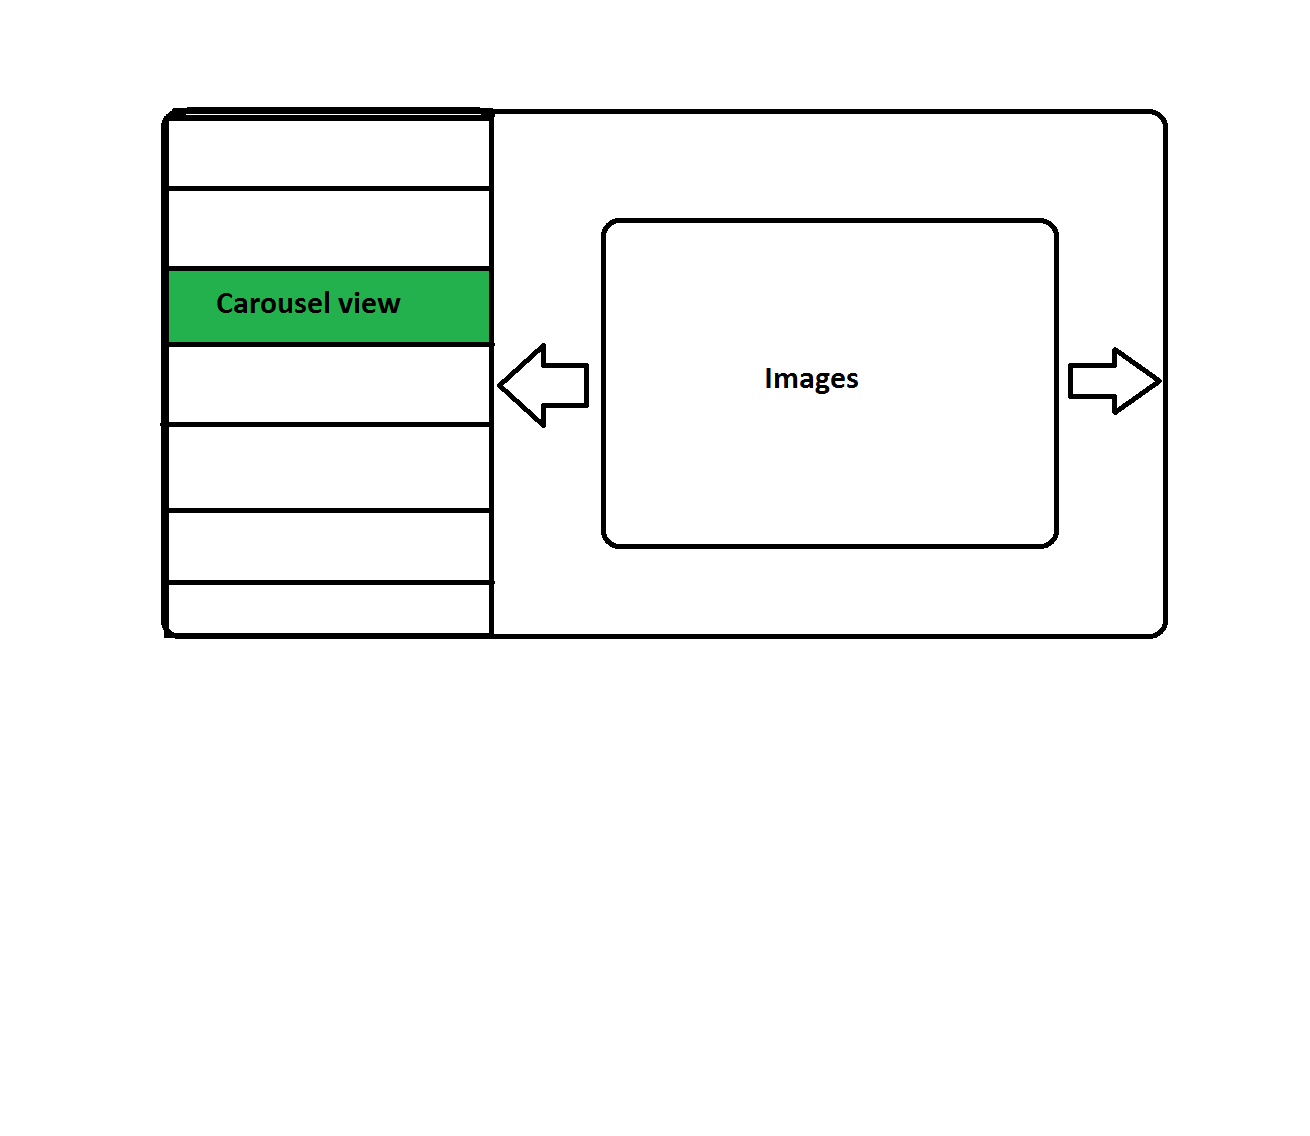 Easy To Use Carousel View Within Xamarin?